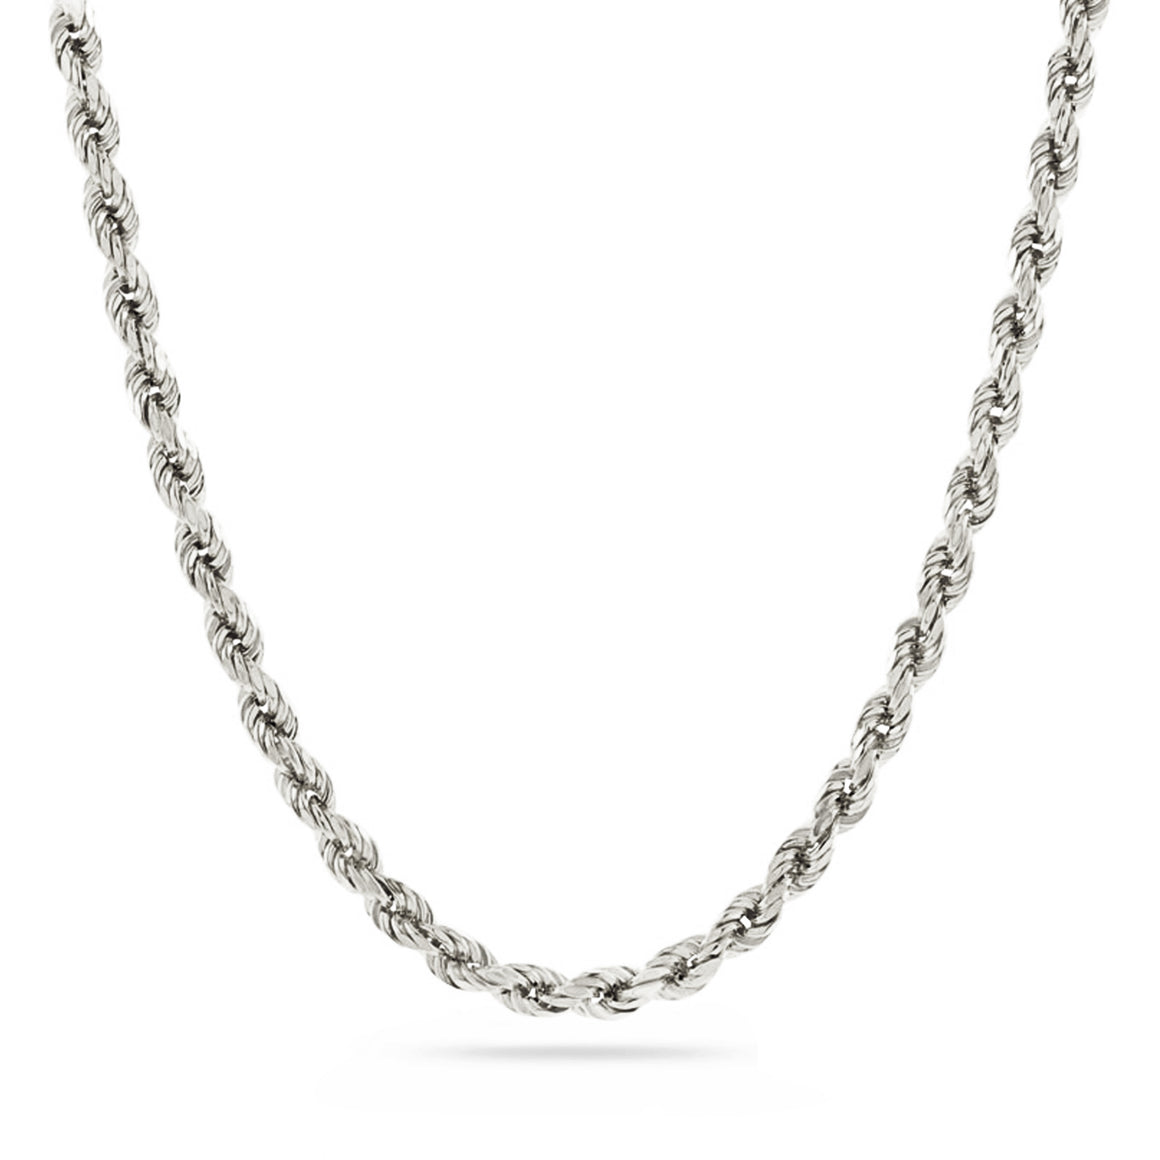 3mm Diamond Cut Rope Chain - 18k White Gold